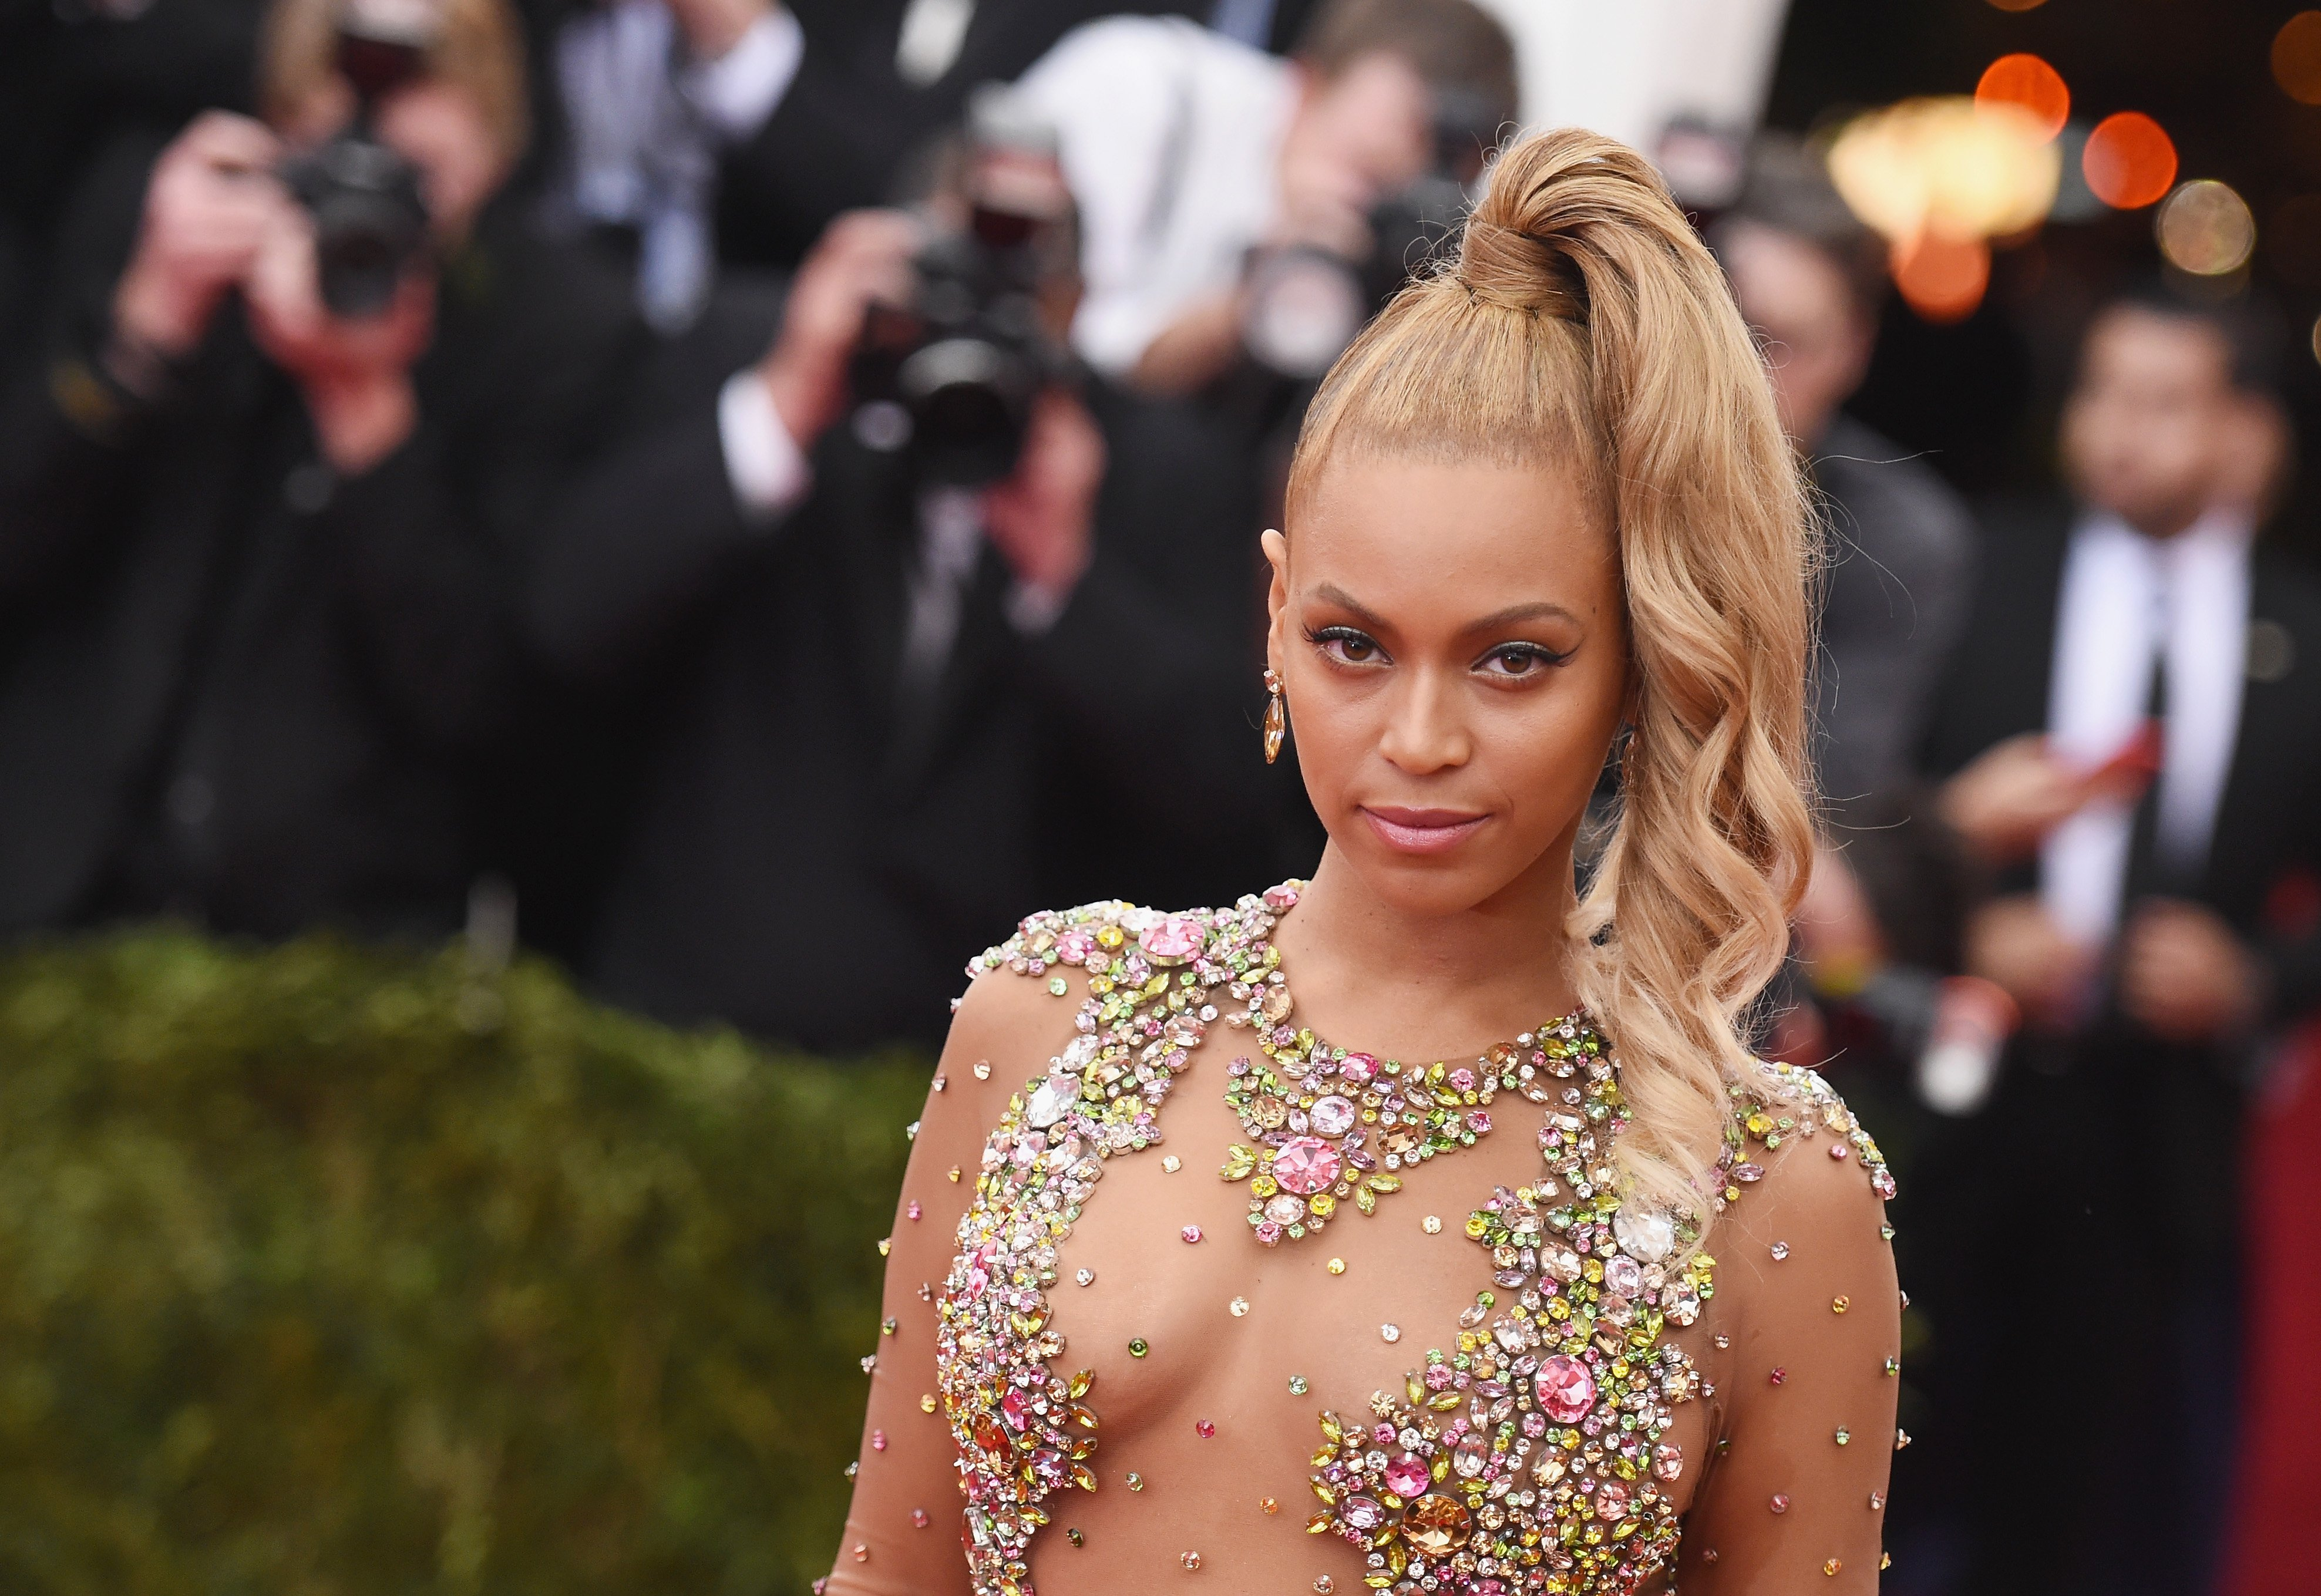 Beyoncé at the 'China: Through The Looking Glass' Costume Institute Benefit Gala on May 4, 2015 in New York City | Photo: Getty Images